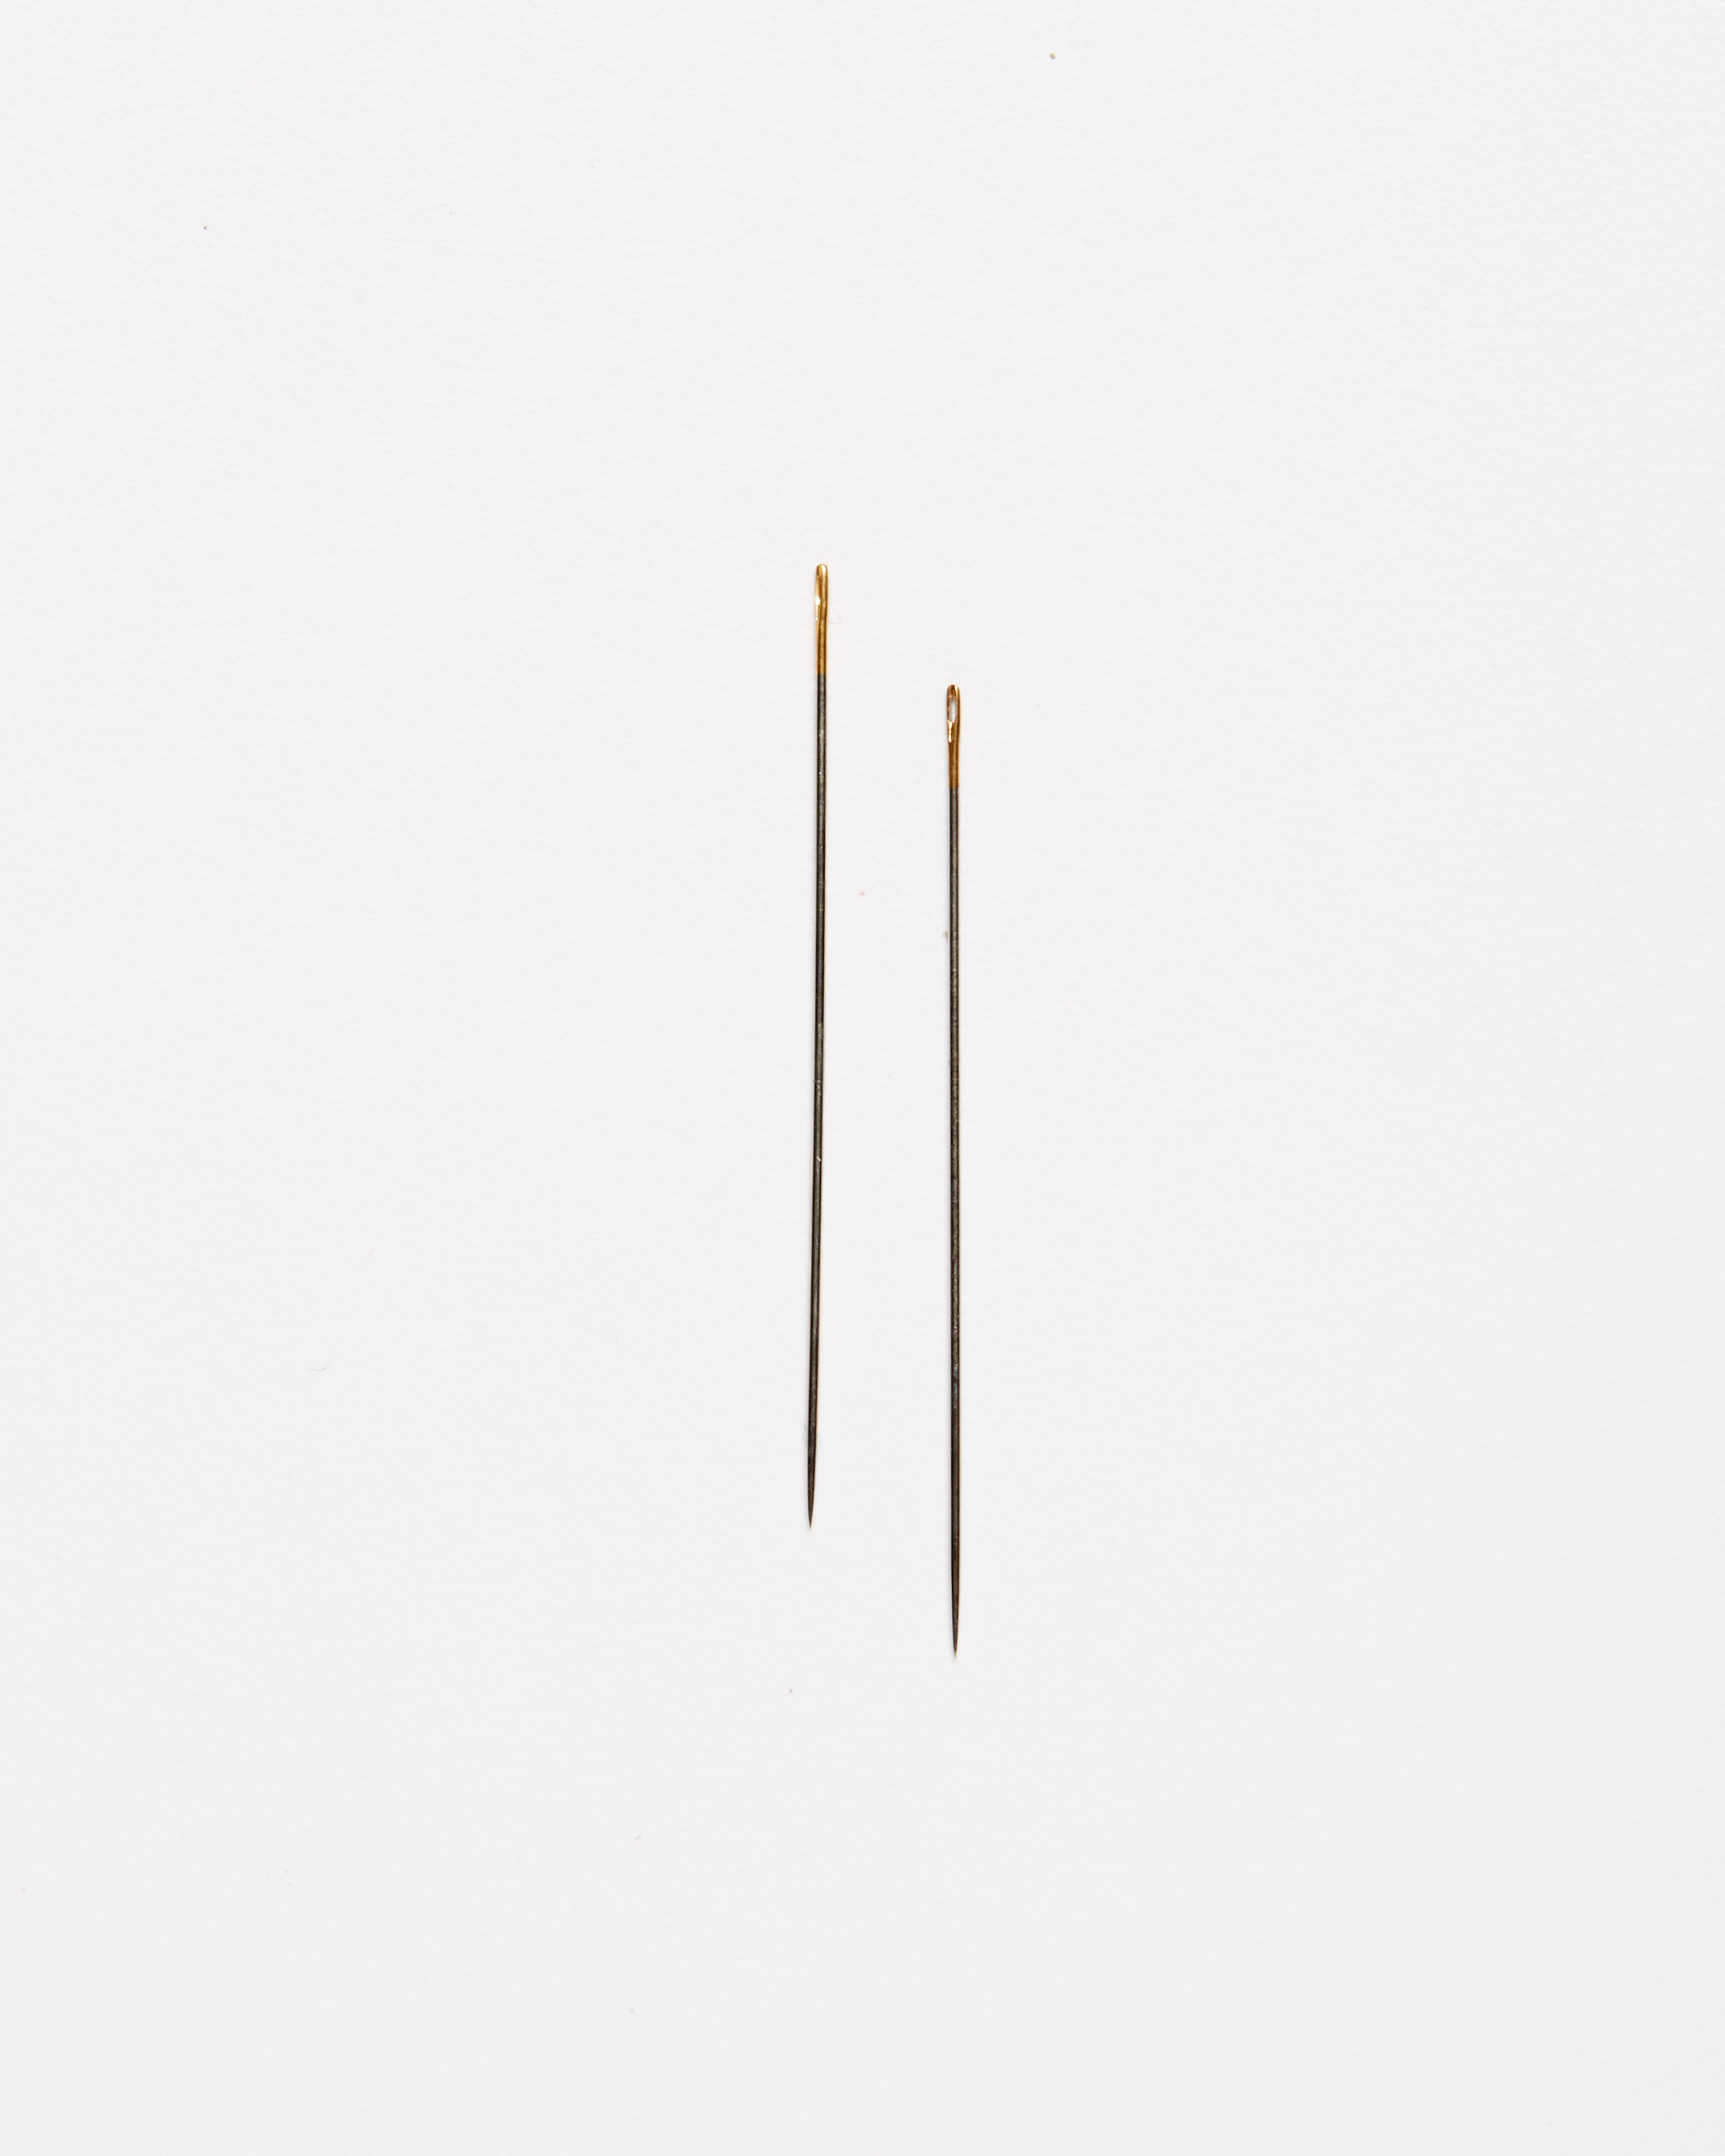 two embroidery milliner needles against a white background